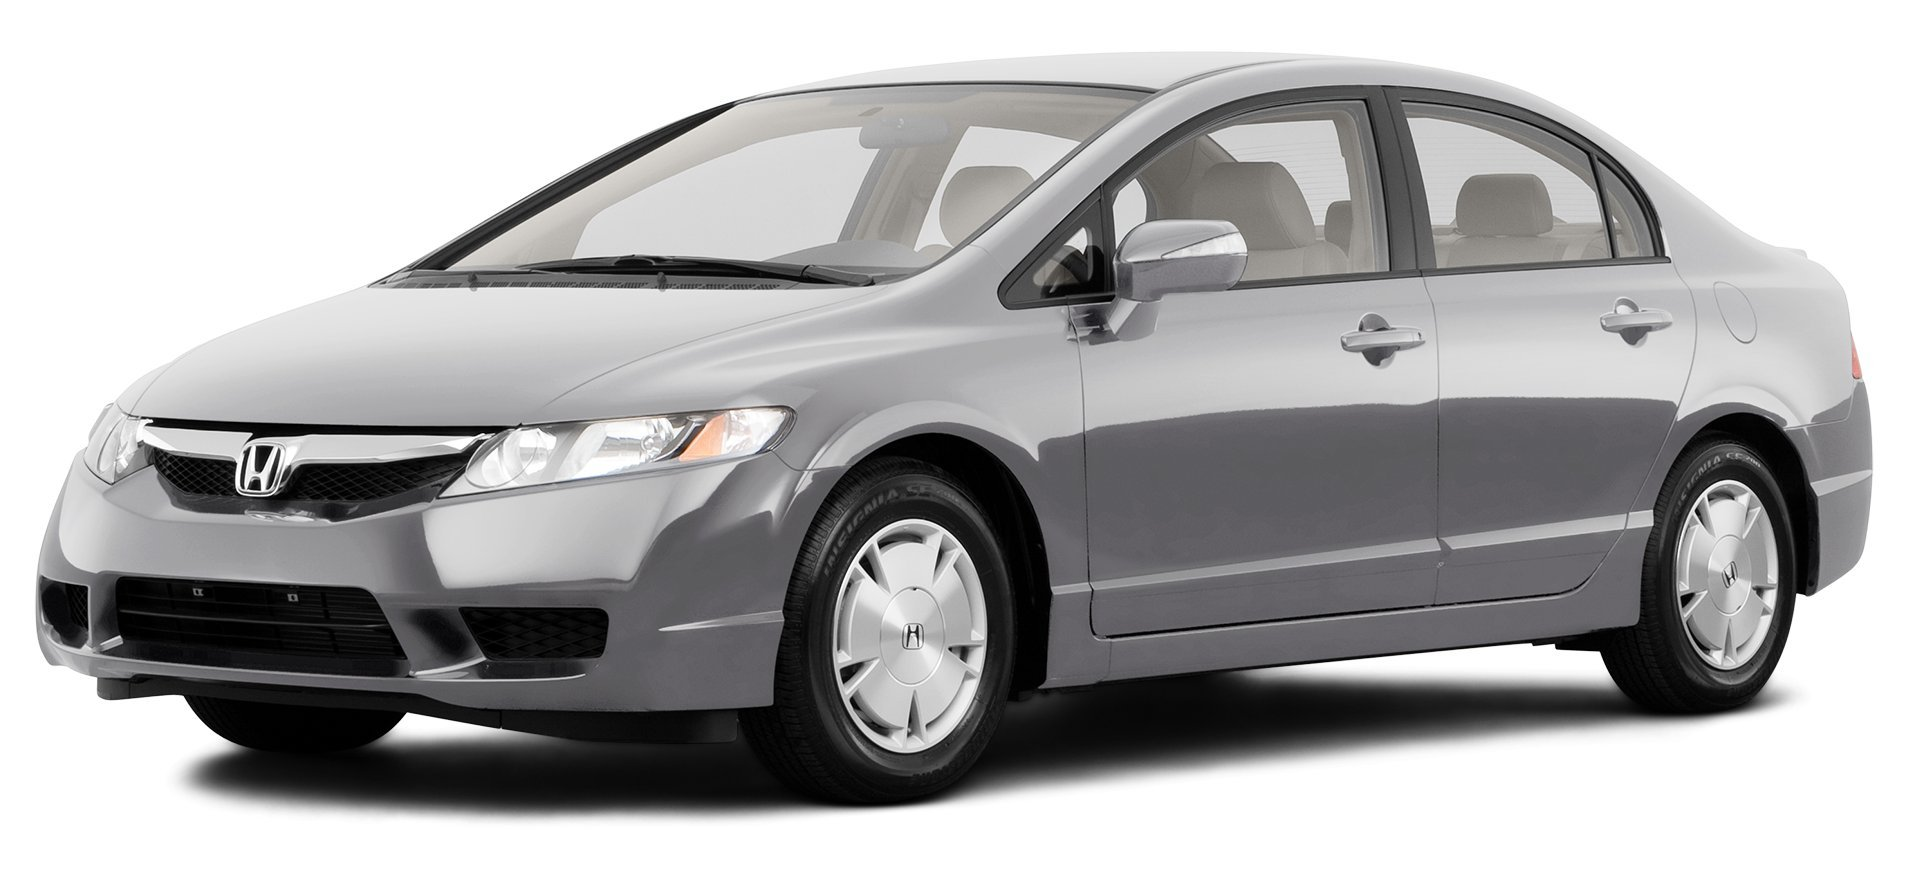 2011 Honda Civic Sedan >> Amazon Com 2011 Honda Civic Reviews Images And Specs